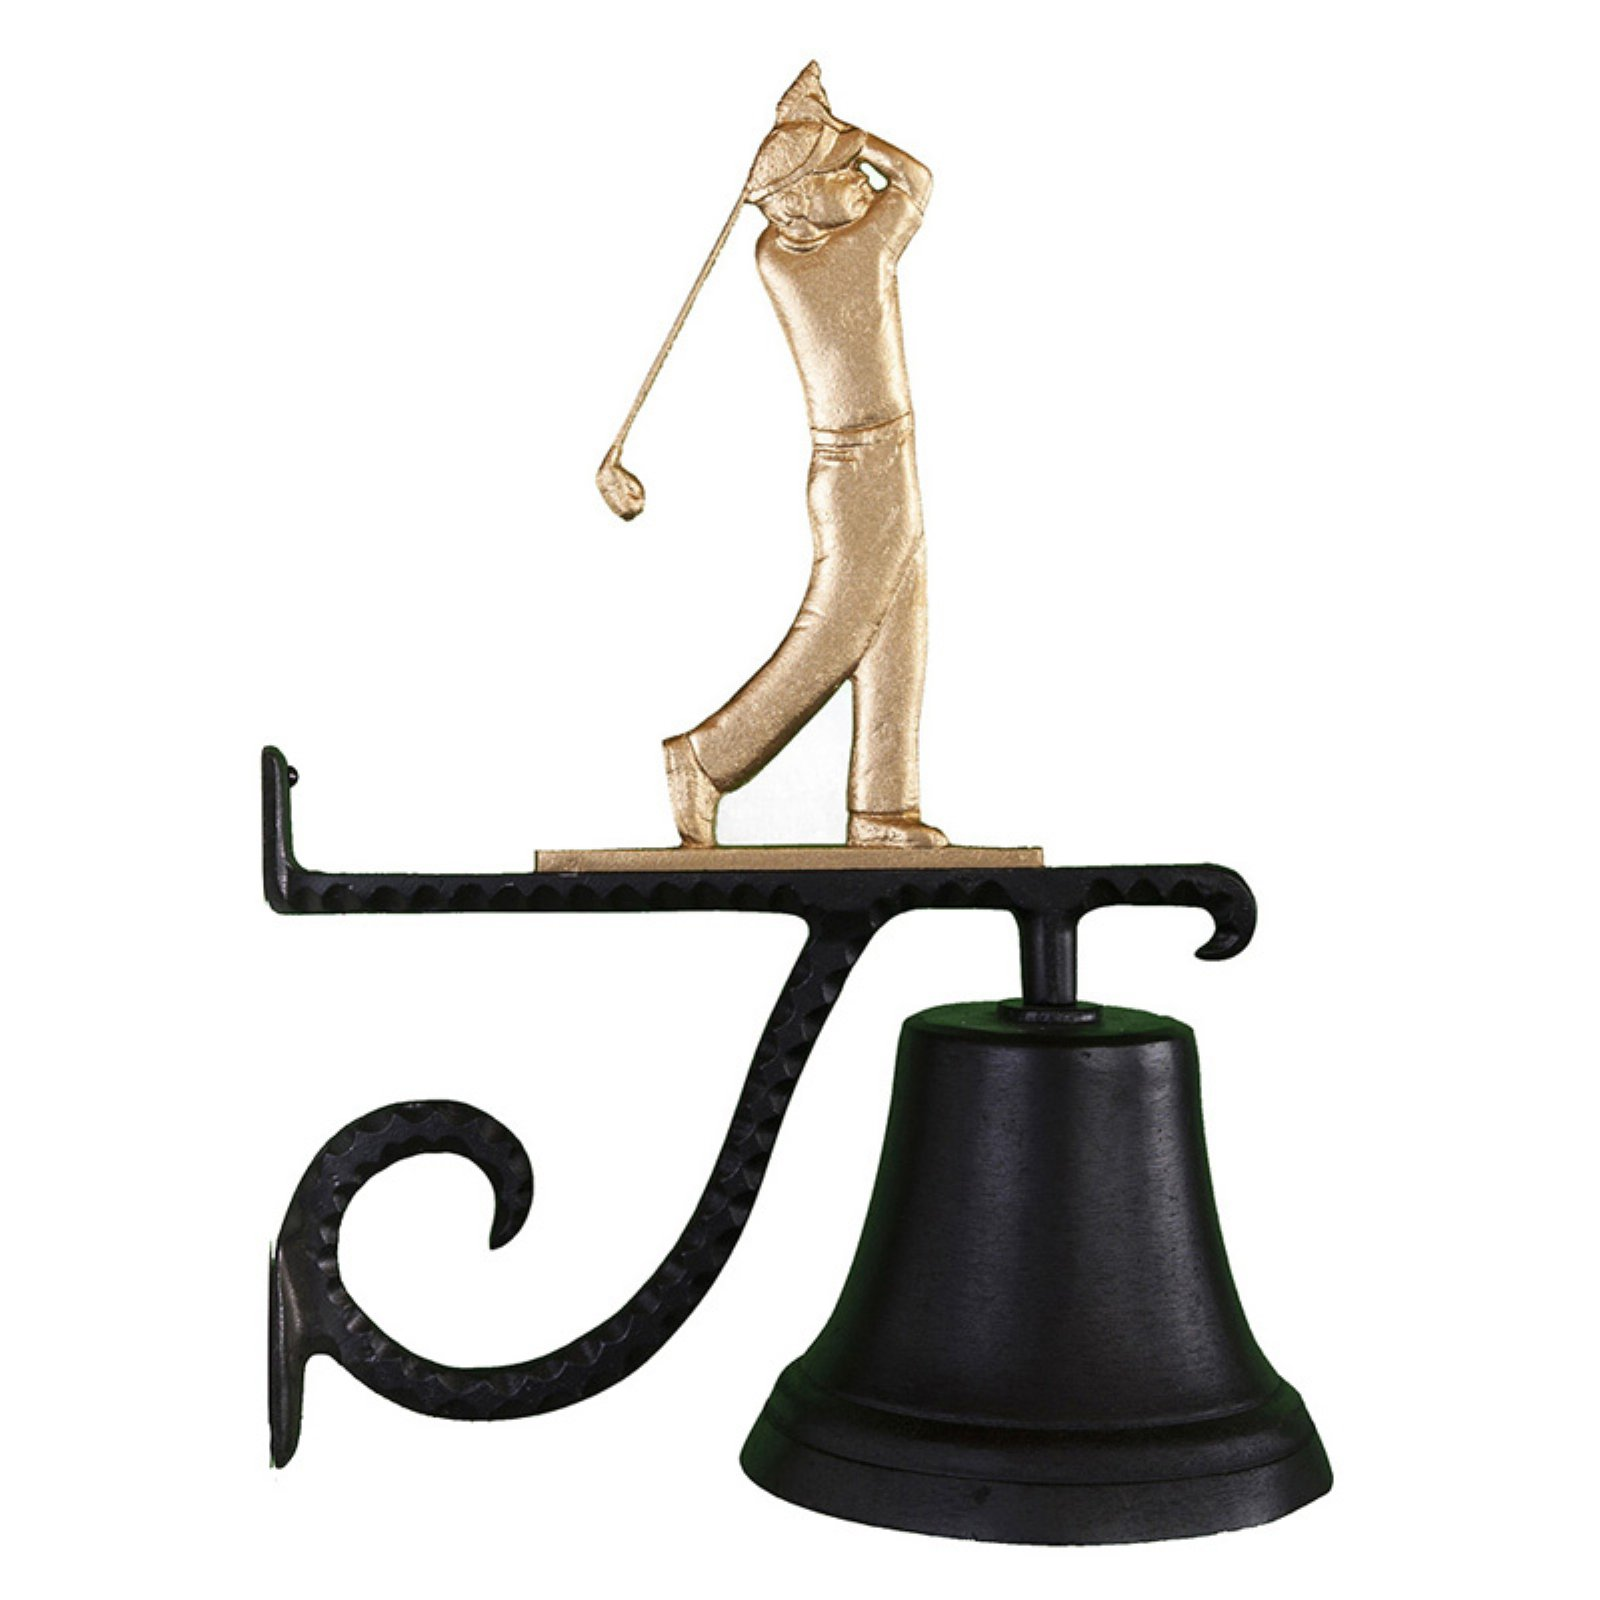 Cast Bell with Gold Golfer Ornament